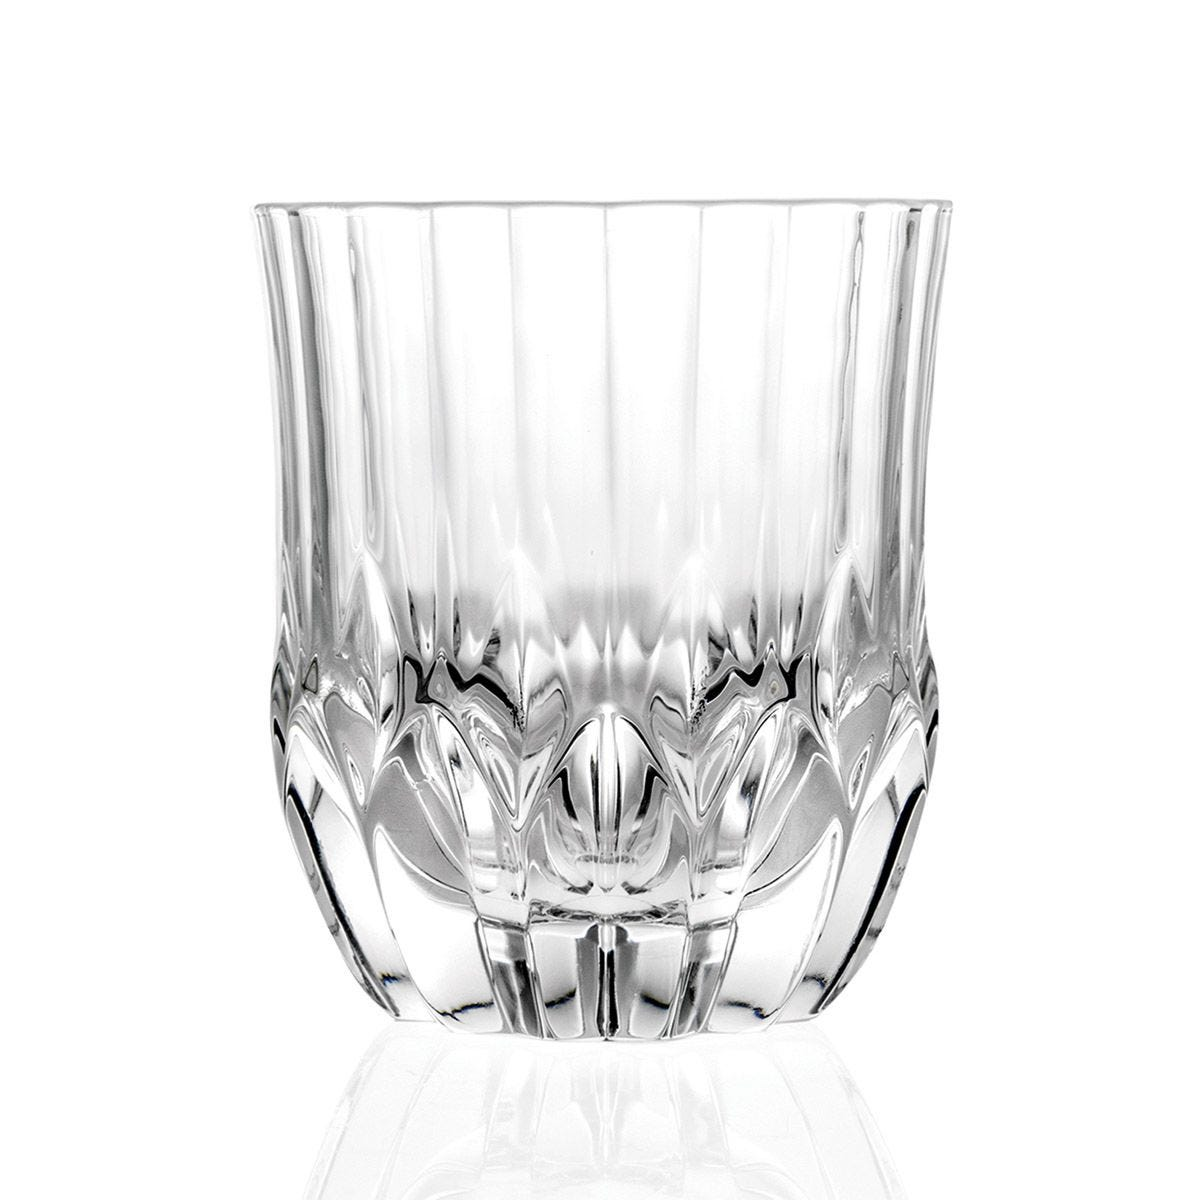 RCR Adagio Crystal Short Whisky Water Tumbler Glasses Set of 6